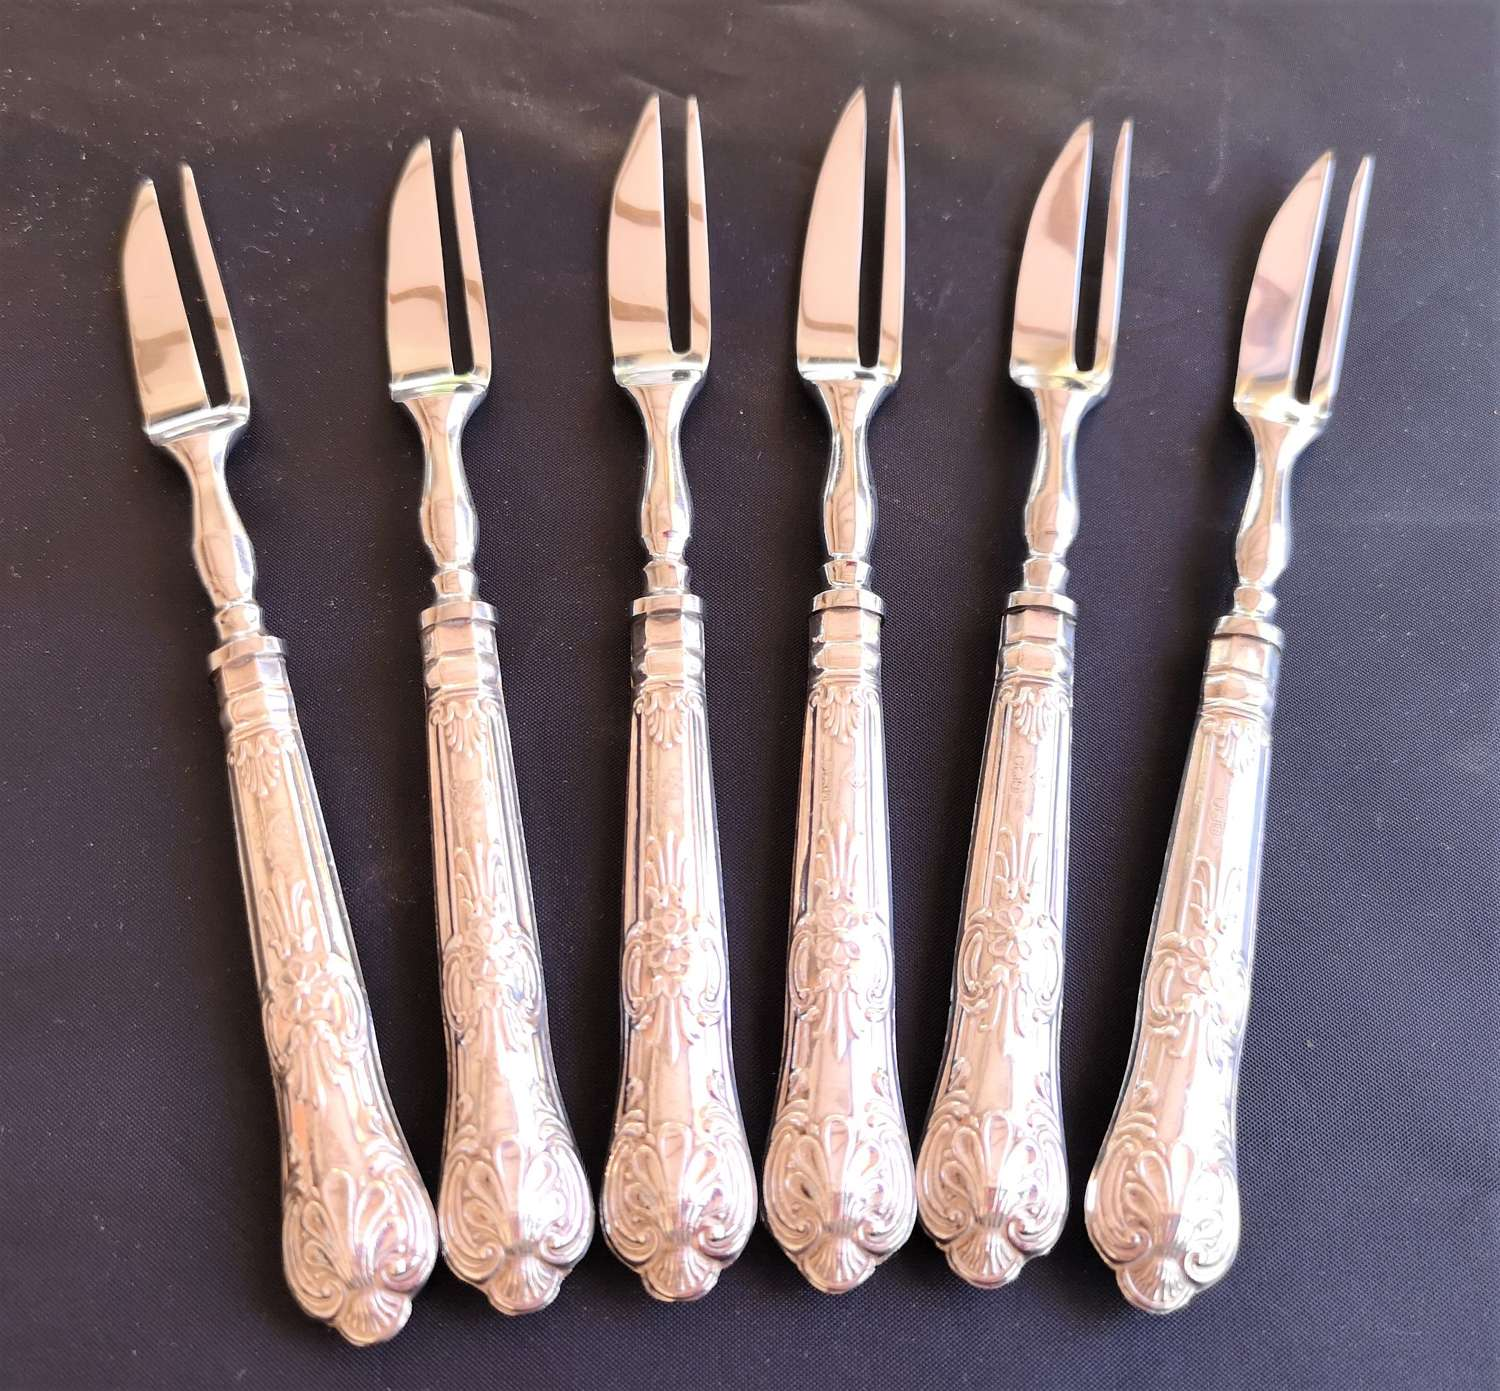 Cased set of solid silver cake forks c.1971